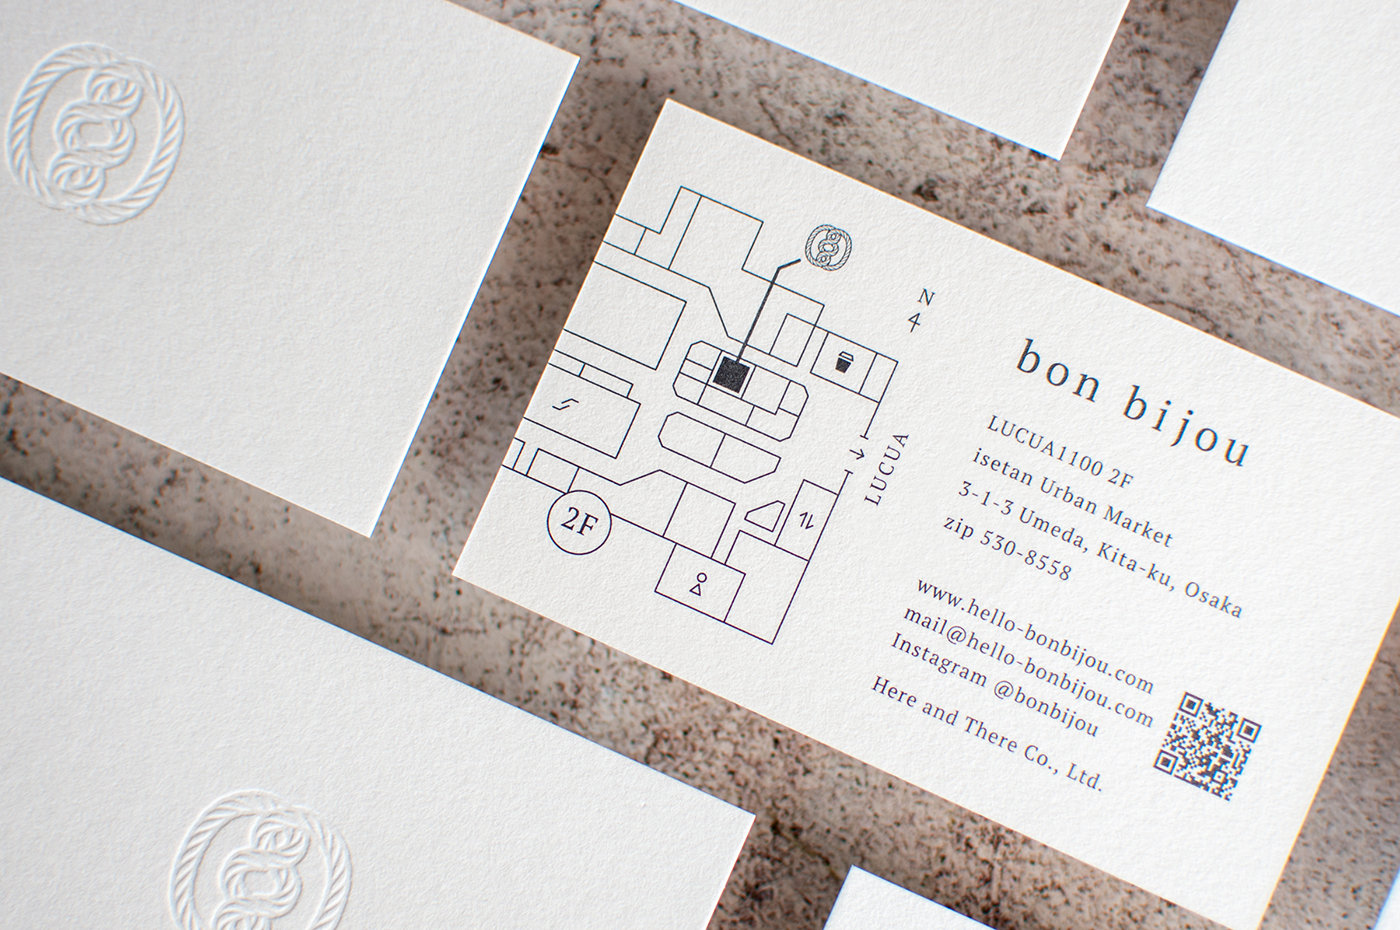 bon bijiou Shop card|Designed by MONARCH